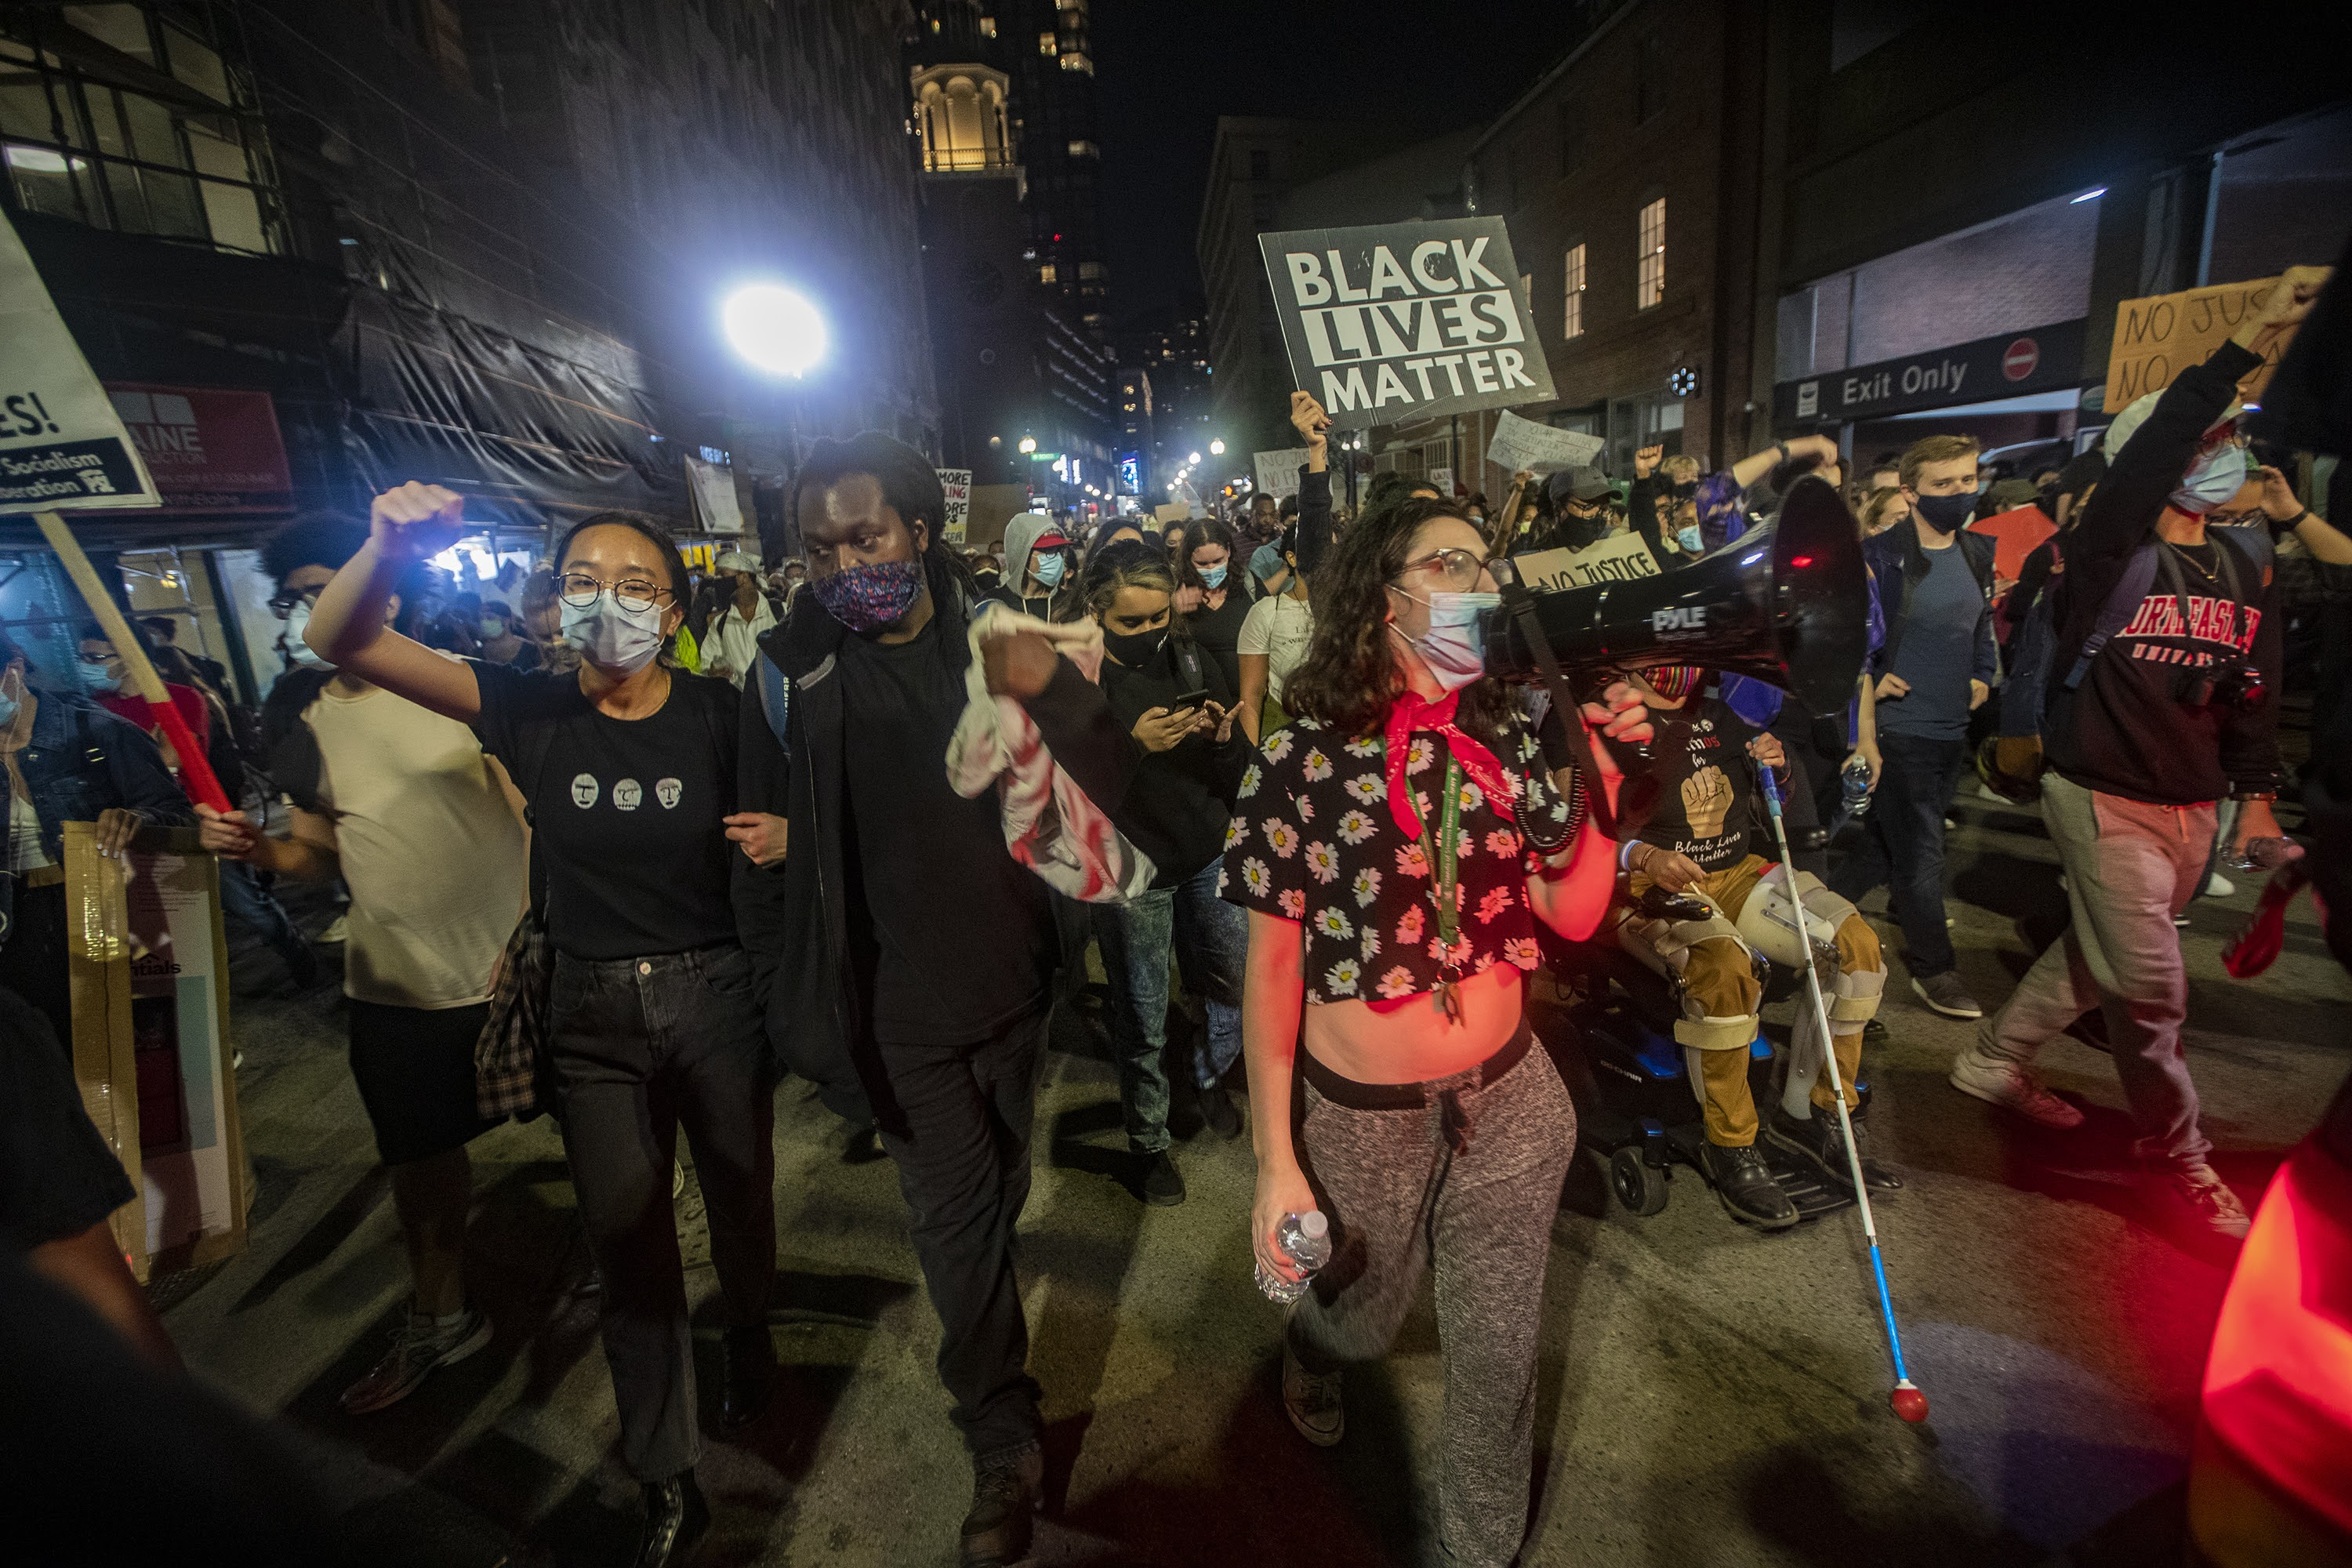 Hundreds March In Boston To Demand Justice After Breonna Taylor Decision Wbur News